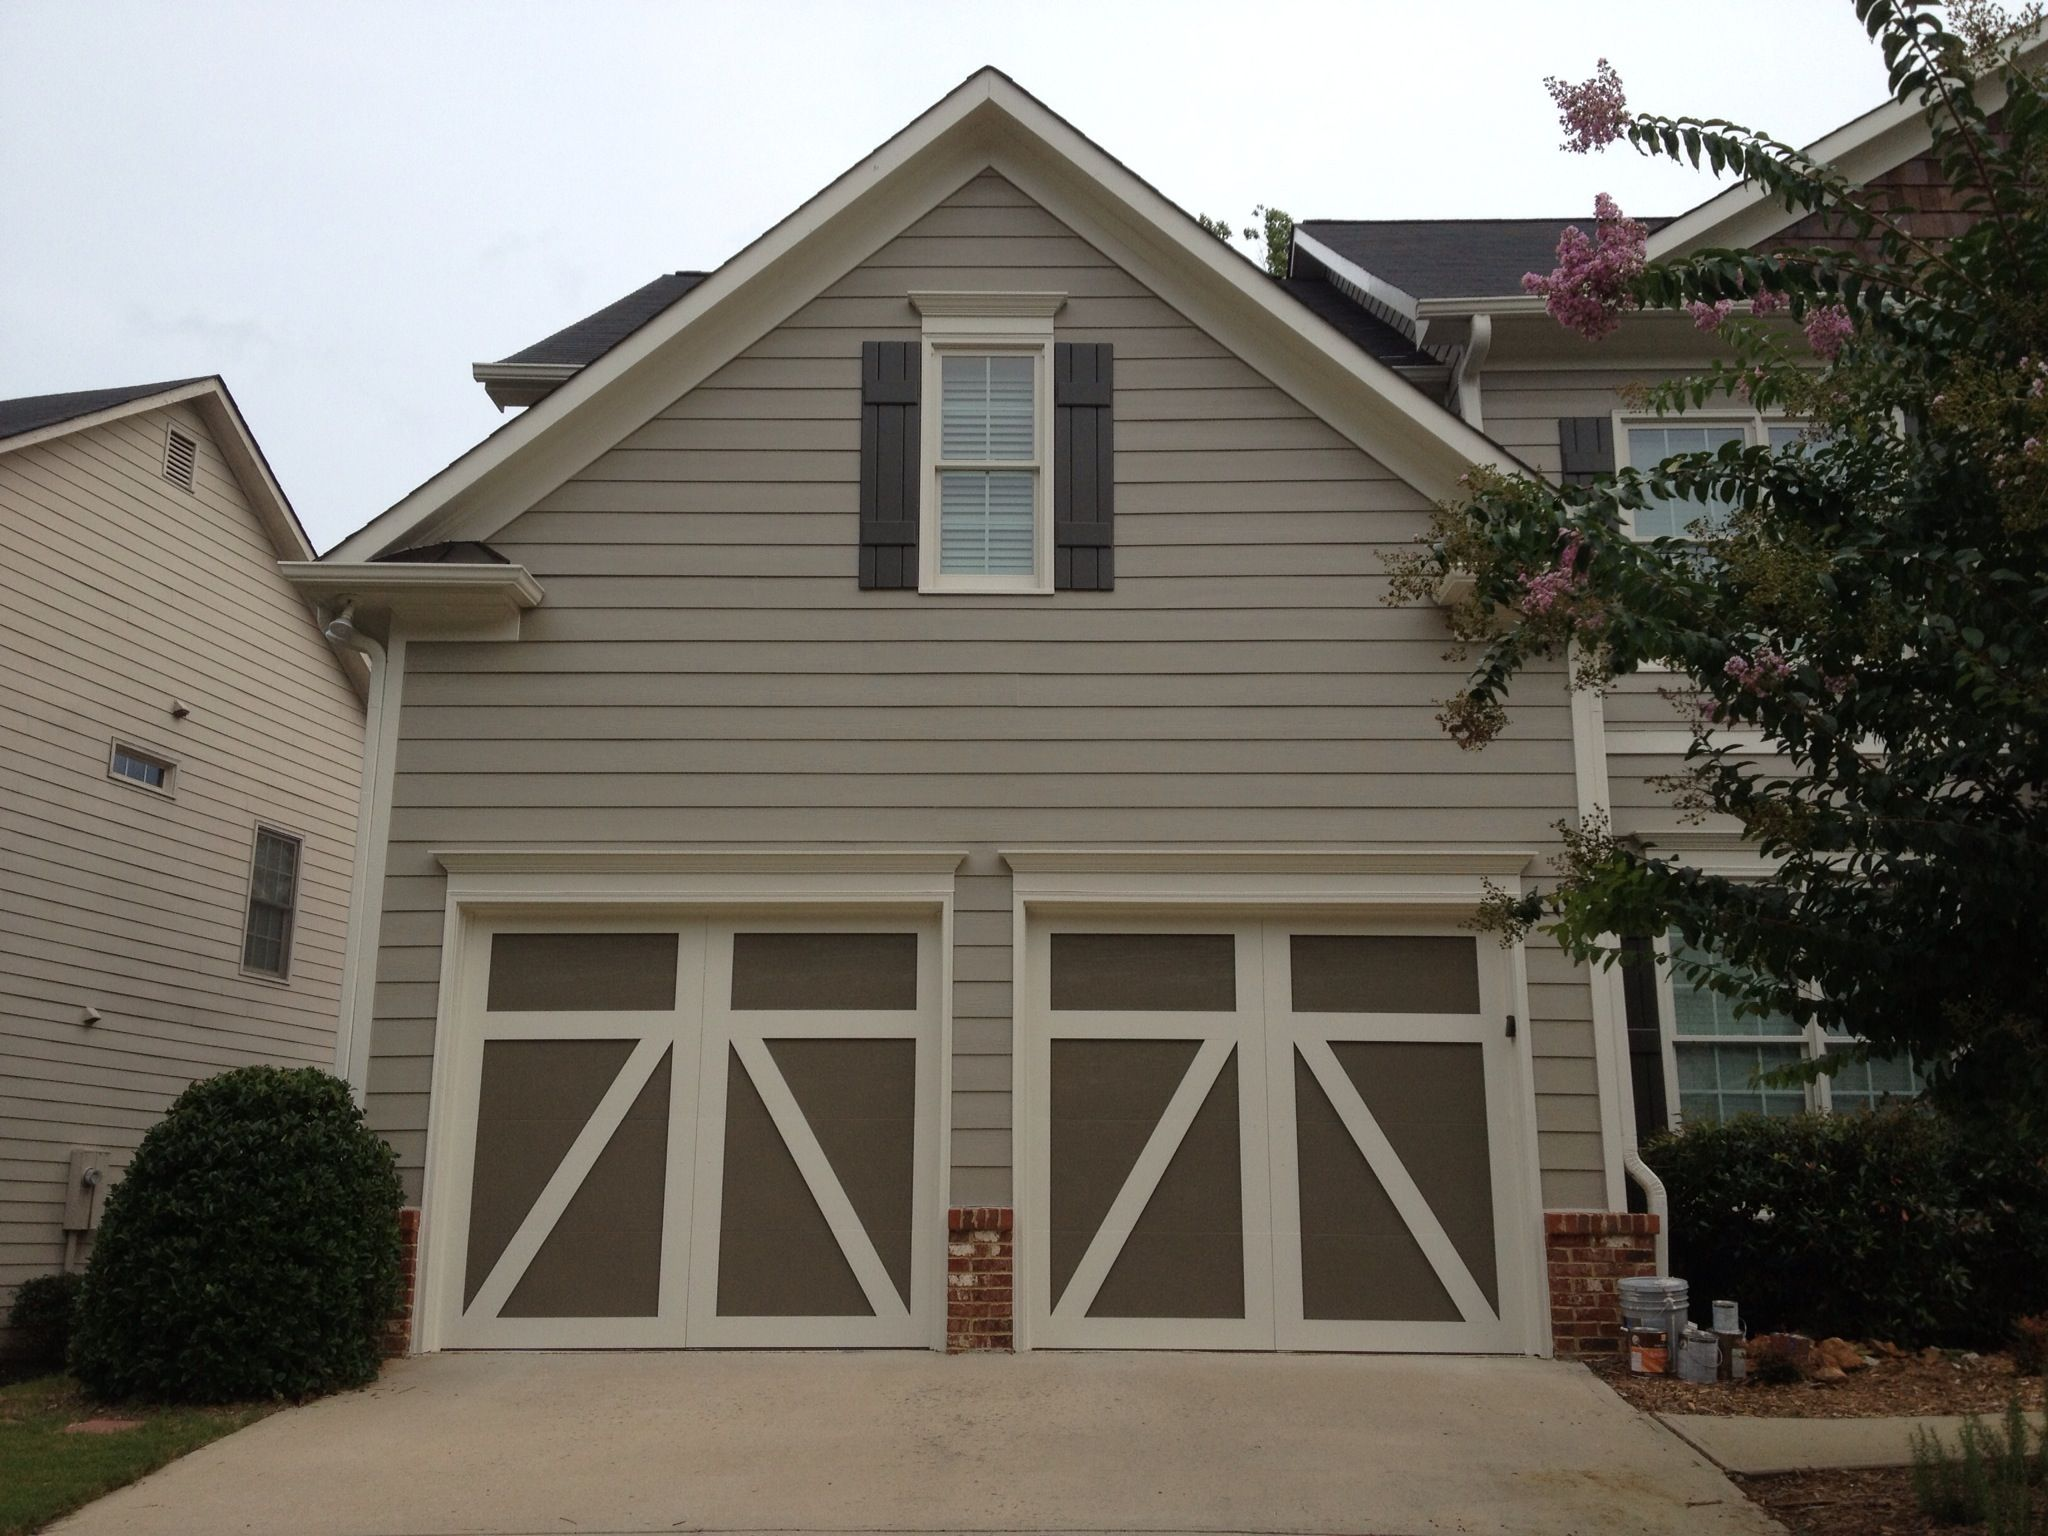 New paint all sherwin williams siding intellectual gray 7045 trim natural choice 7011 inside garage doors anonymous 7046 shutters urbane